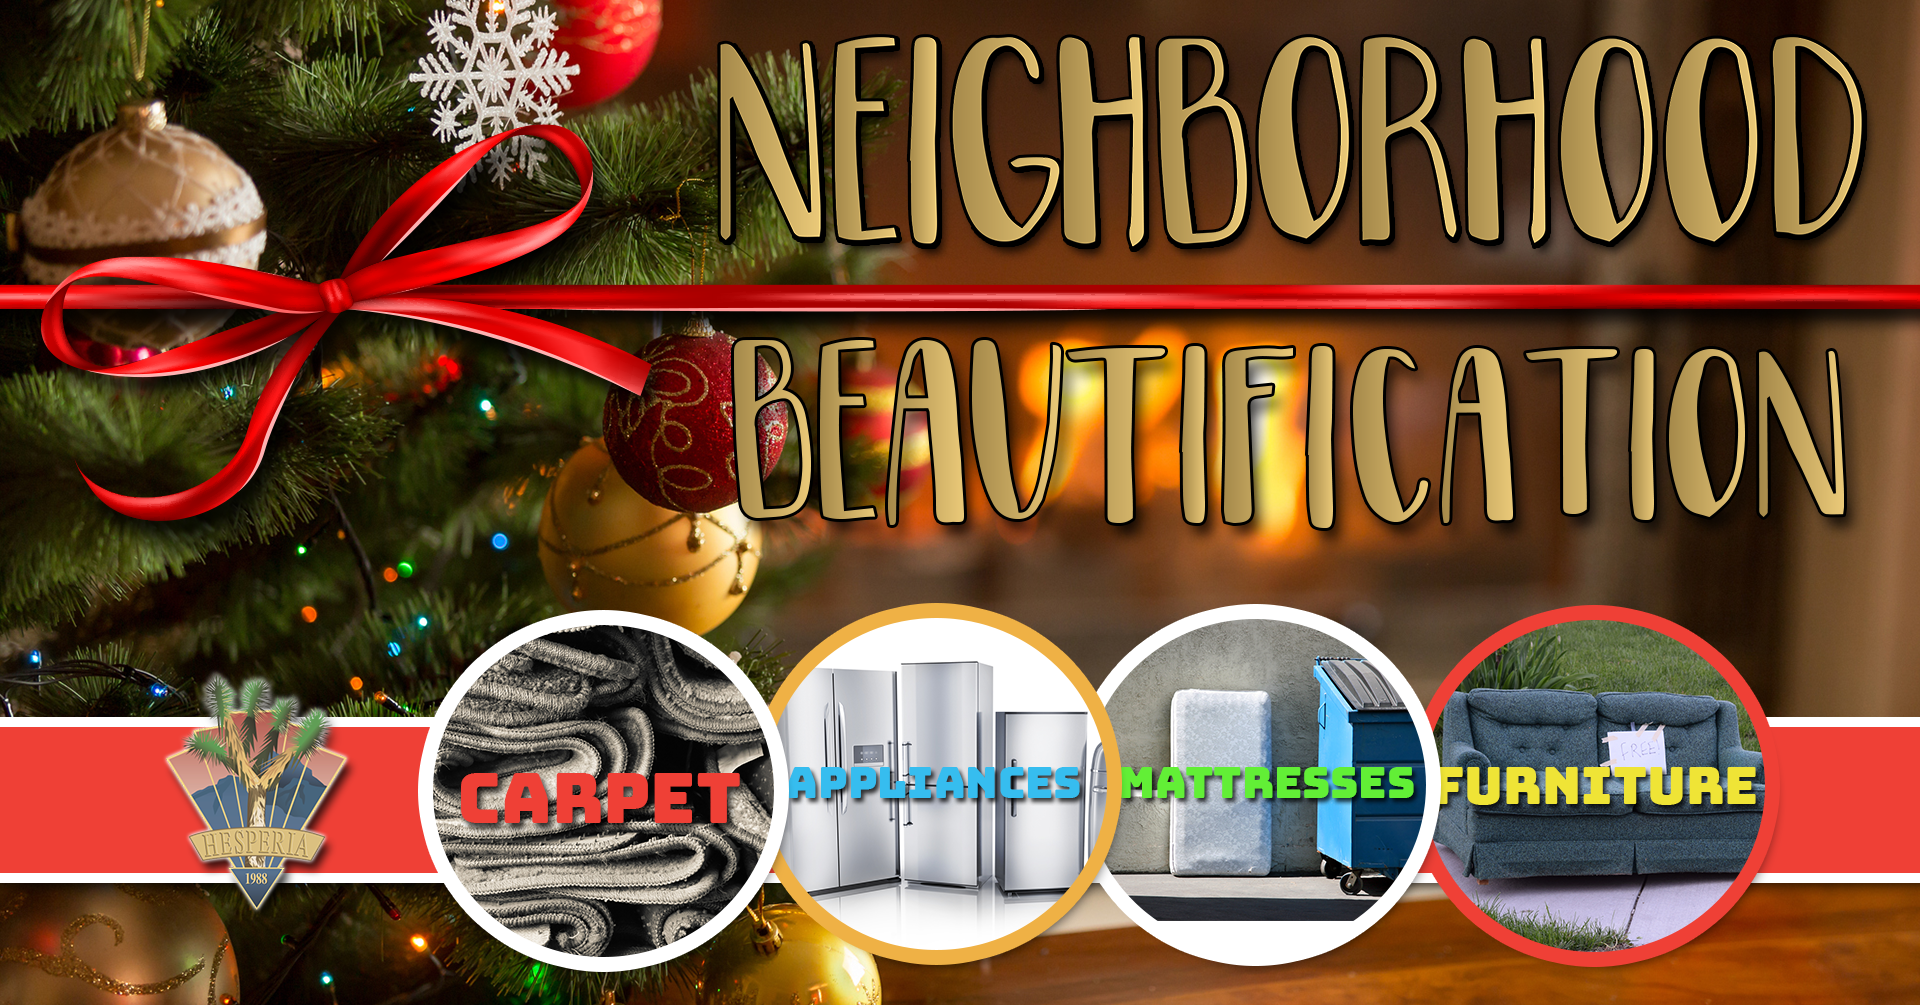 Neighborhood-Beautification-Day-Facebook-Header